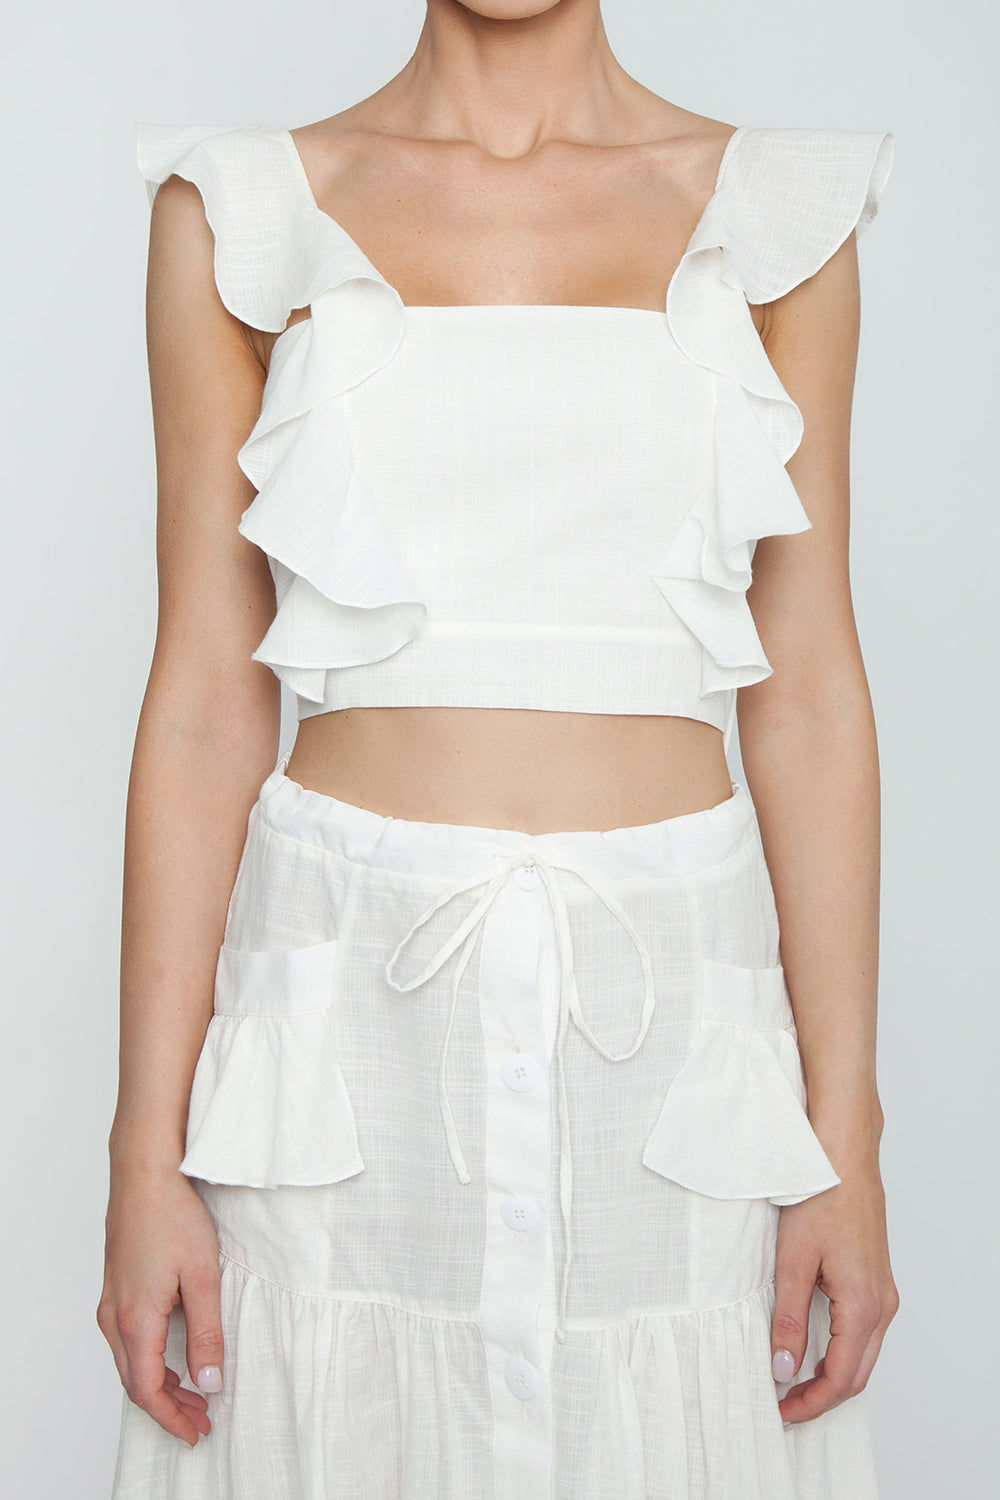 CLUBE BOSSA Lubba Cropped Blouse - Off White Top   Off White  Clube Bossa Lubba Cropped Blouse - Off White Features:  Square neckline Ruffle shoulders Back lace-up fastening 100% Cotton Detail View